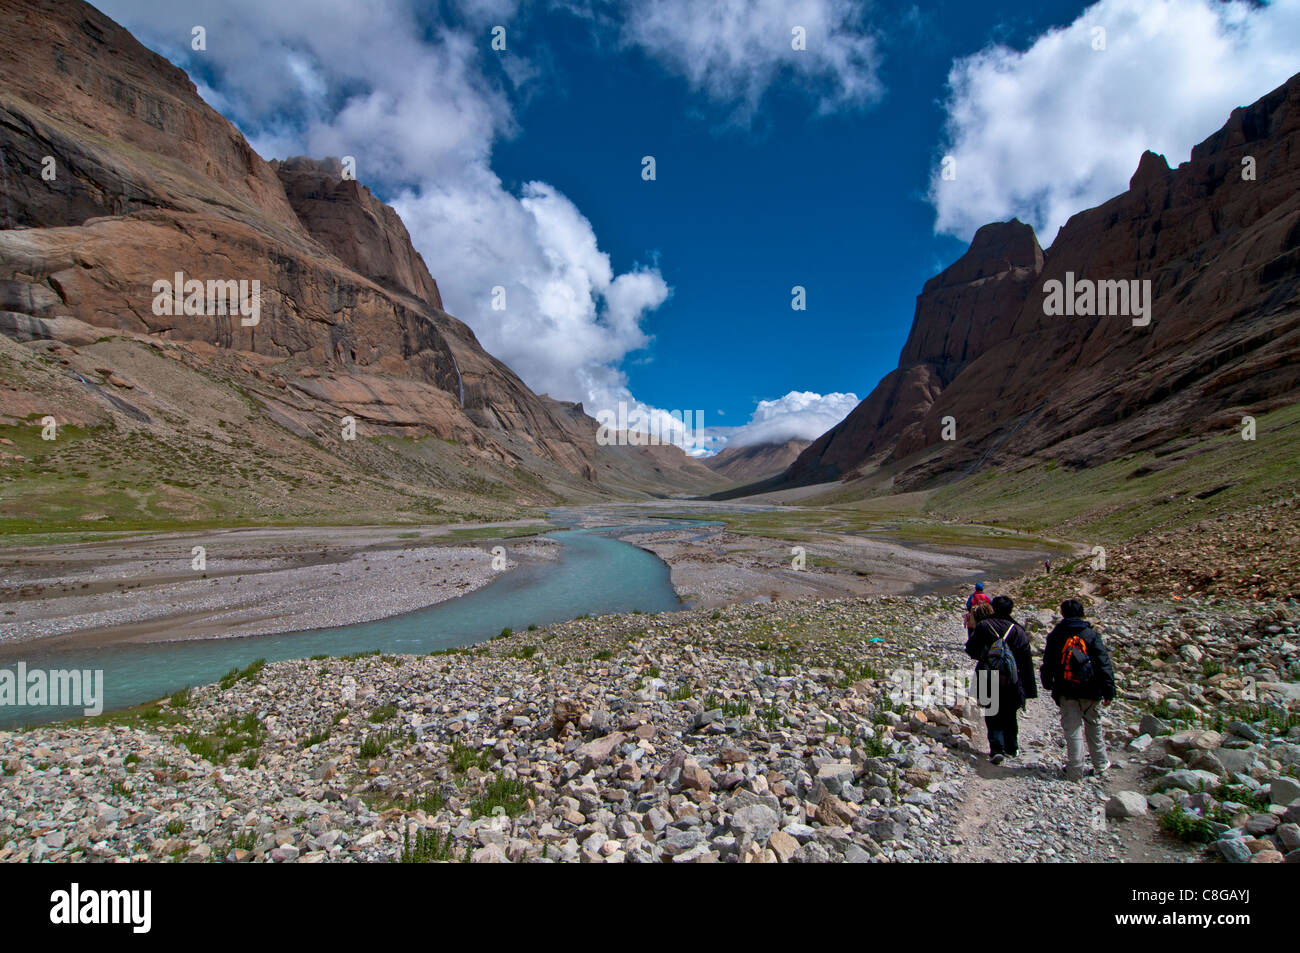 Pilgrims doing the Kora around the holy mountain Mount Kailash in Western Tibet, China - Stock Image